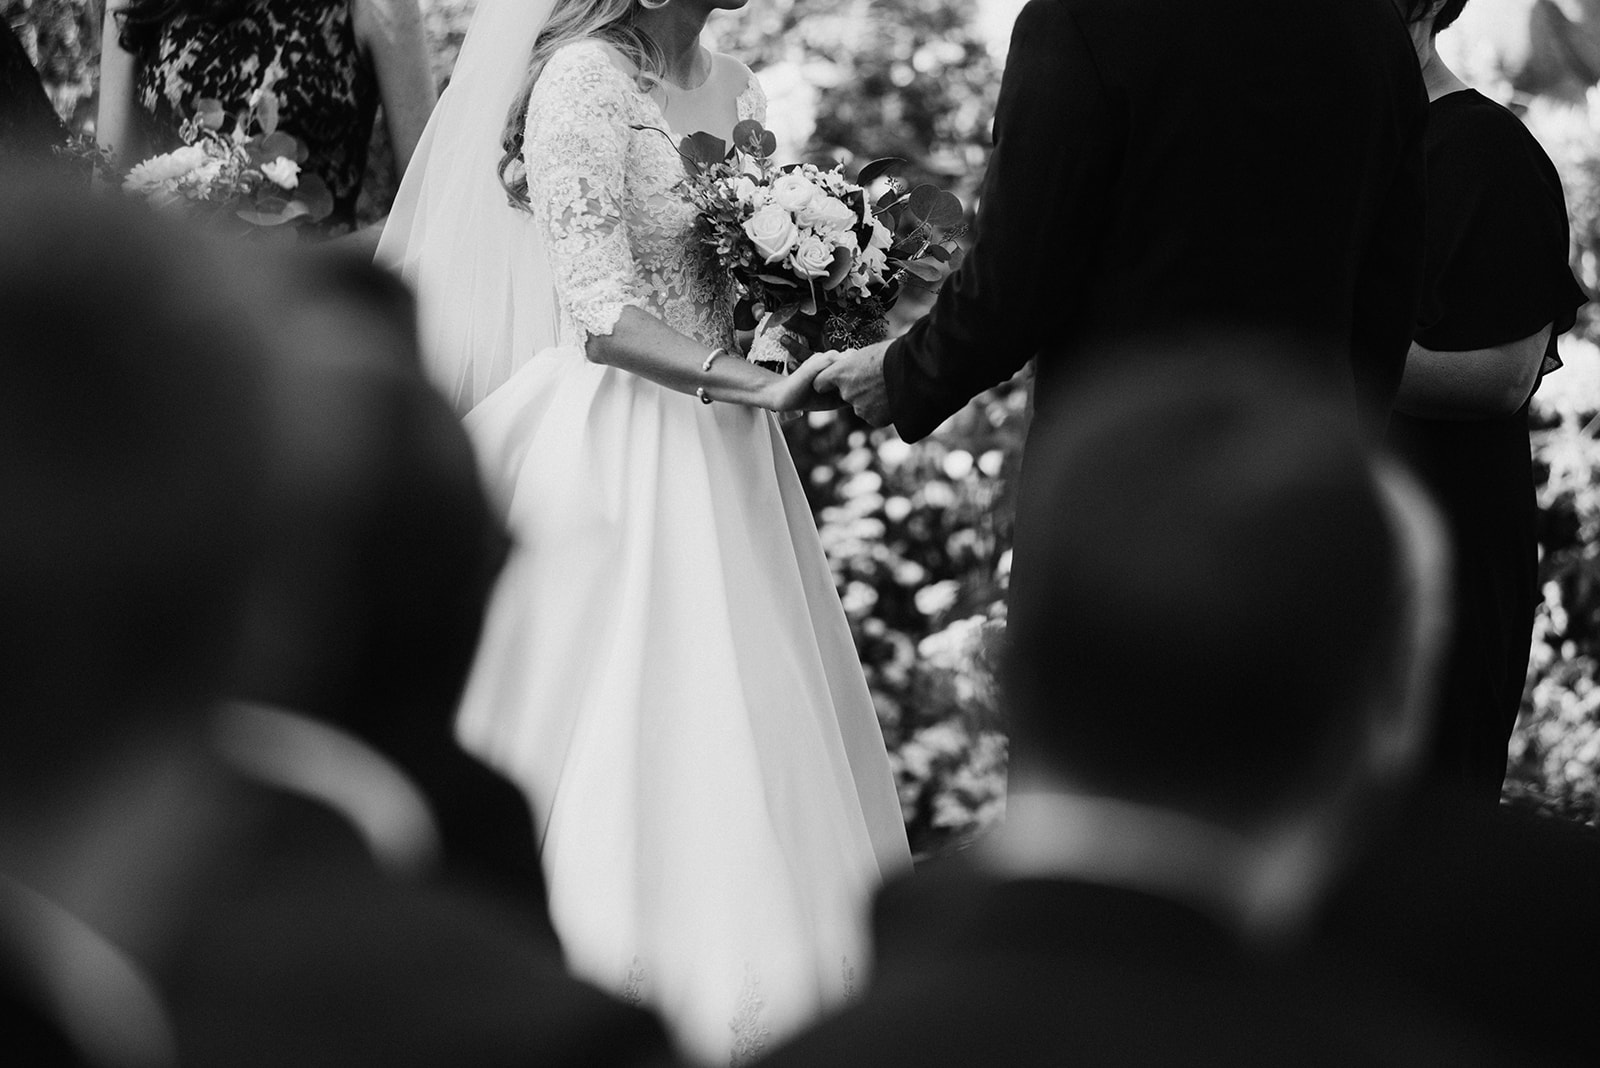 Hatley Castle Wedding - Victoria Wedding Photographer Kim Jay-33.jpg